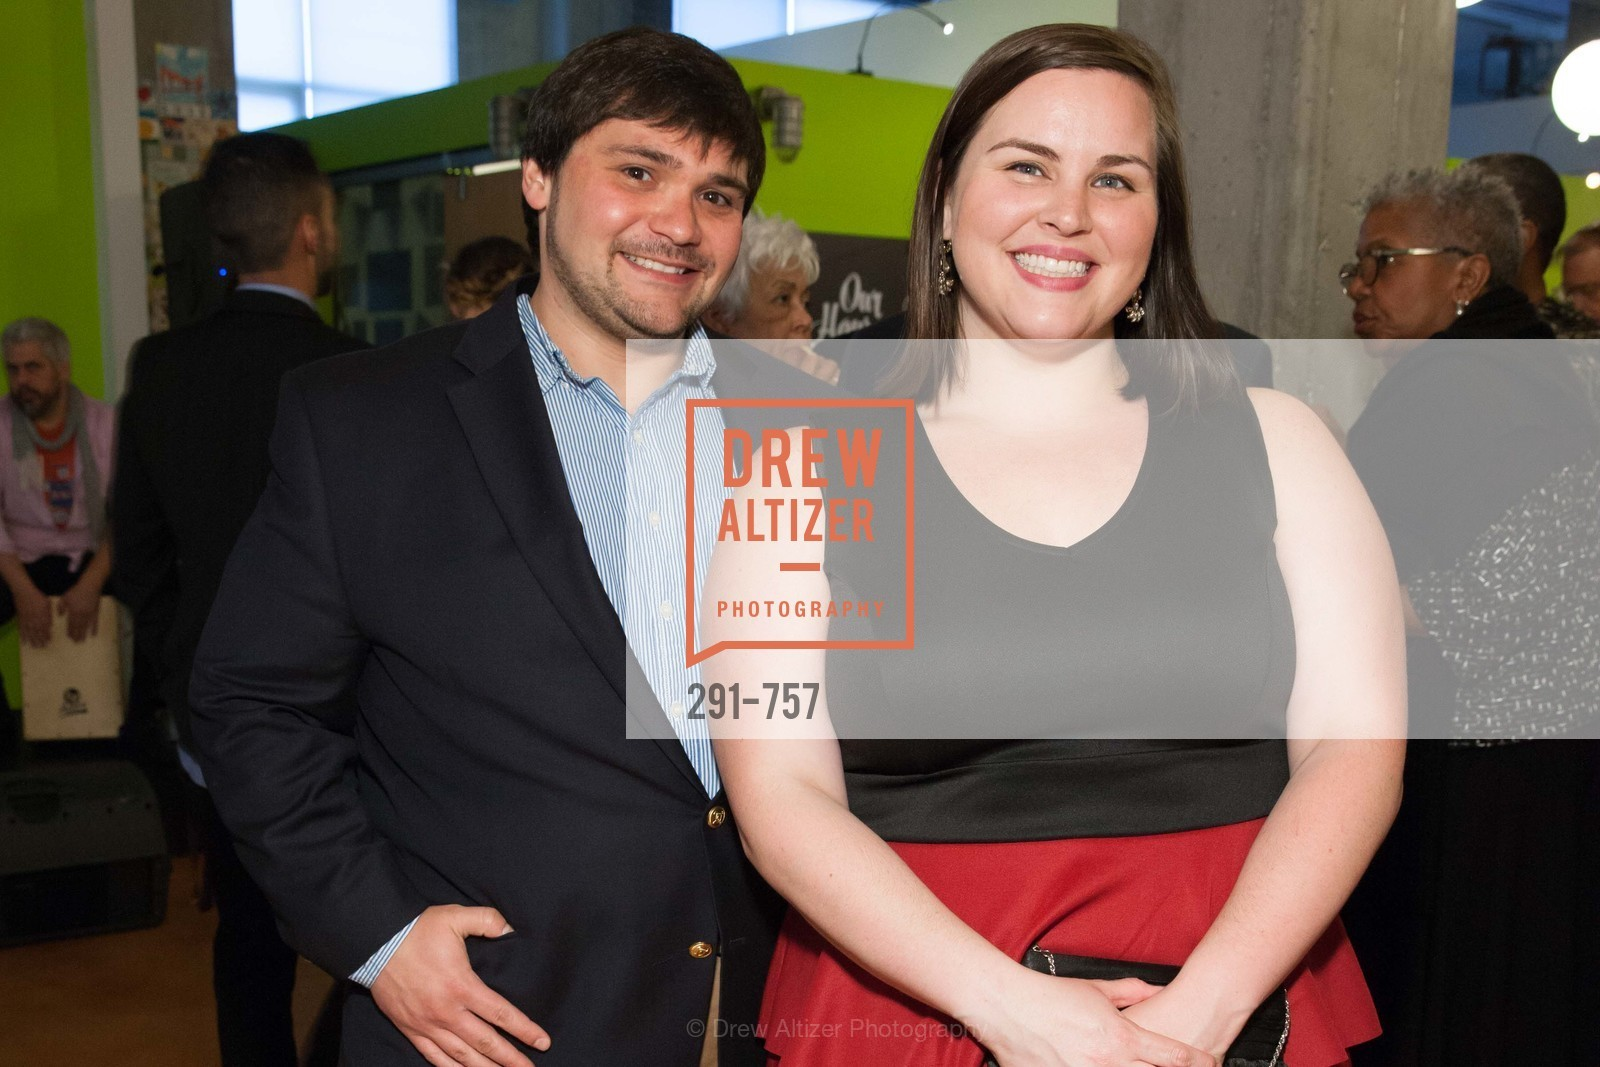 Robert Elwell, Hailey Gaddor, HOMELESS PRENATAL PROGRAM Our House, Our Mission Gala, Homeless Prenatal Program. 2500 18th St, May 31st, 2015,Drew Altizer, Drew Altizer Photography, full-service agency, private events, San Francisco photographer, photographer california